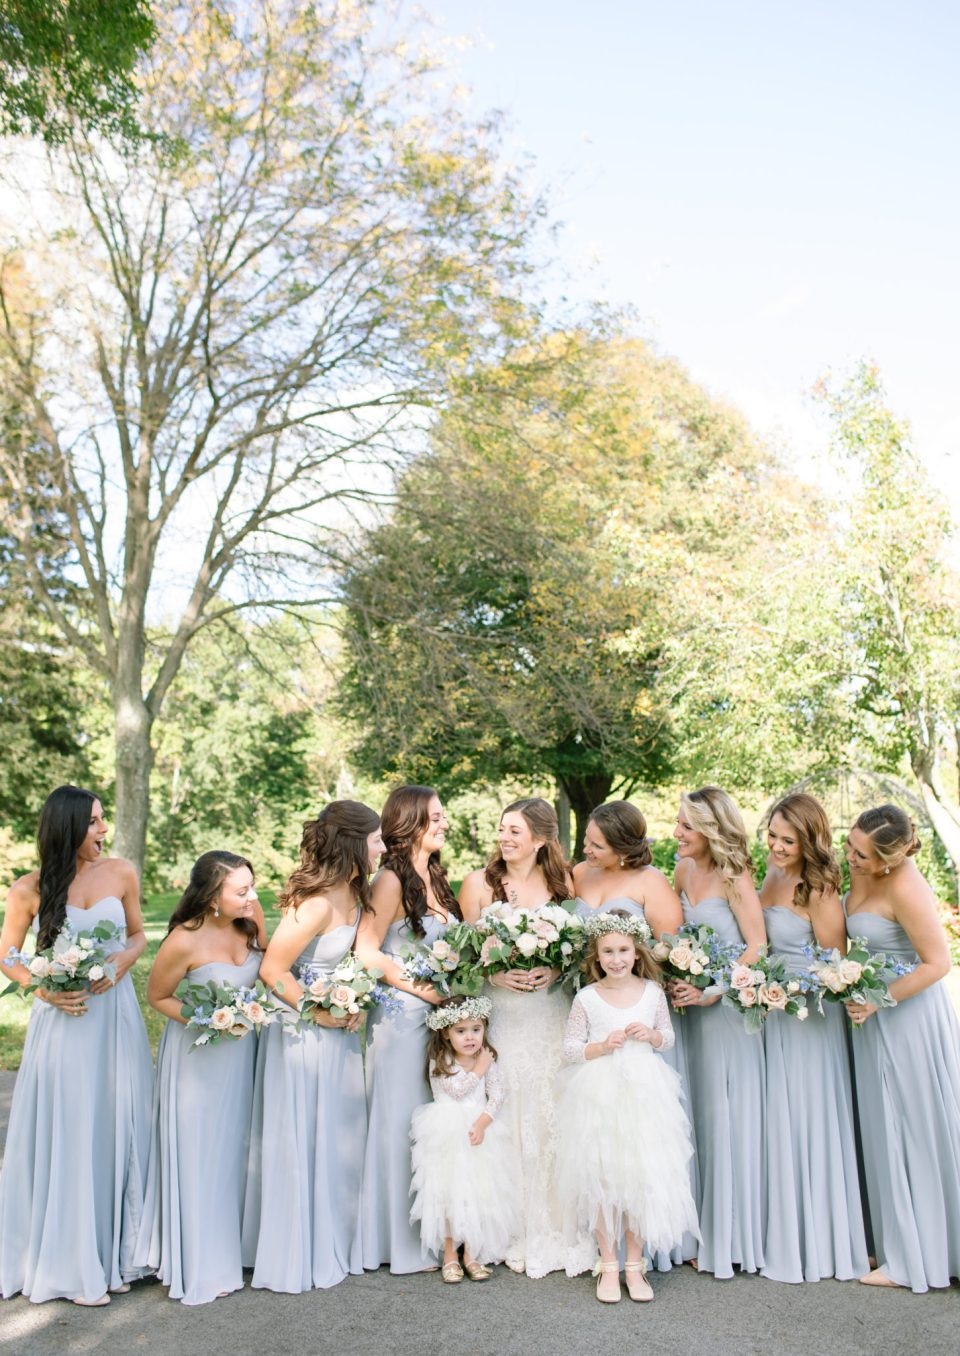 bride with bridesmdaids in dusty blue dresses photographed by Ashley Mac Photographs